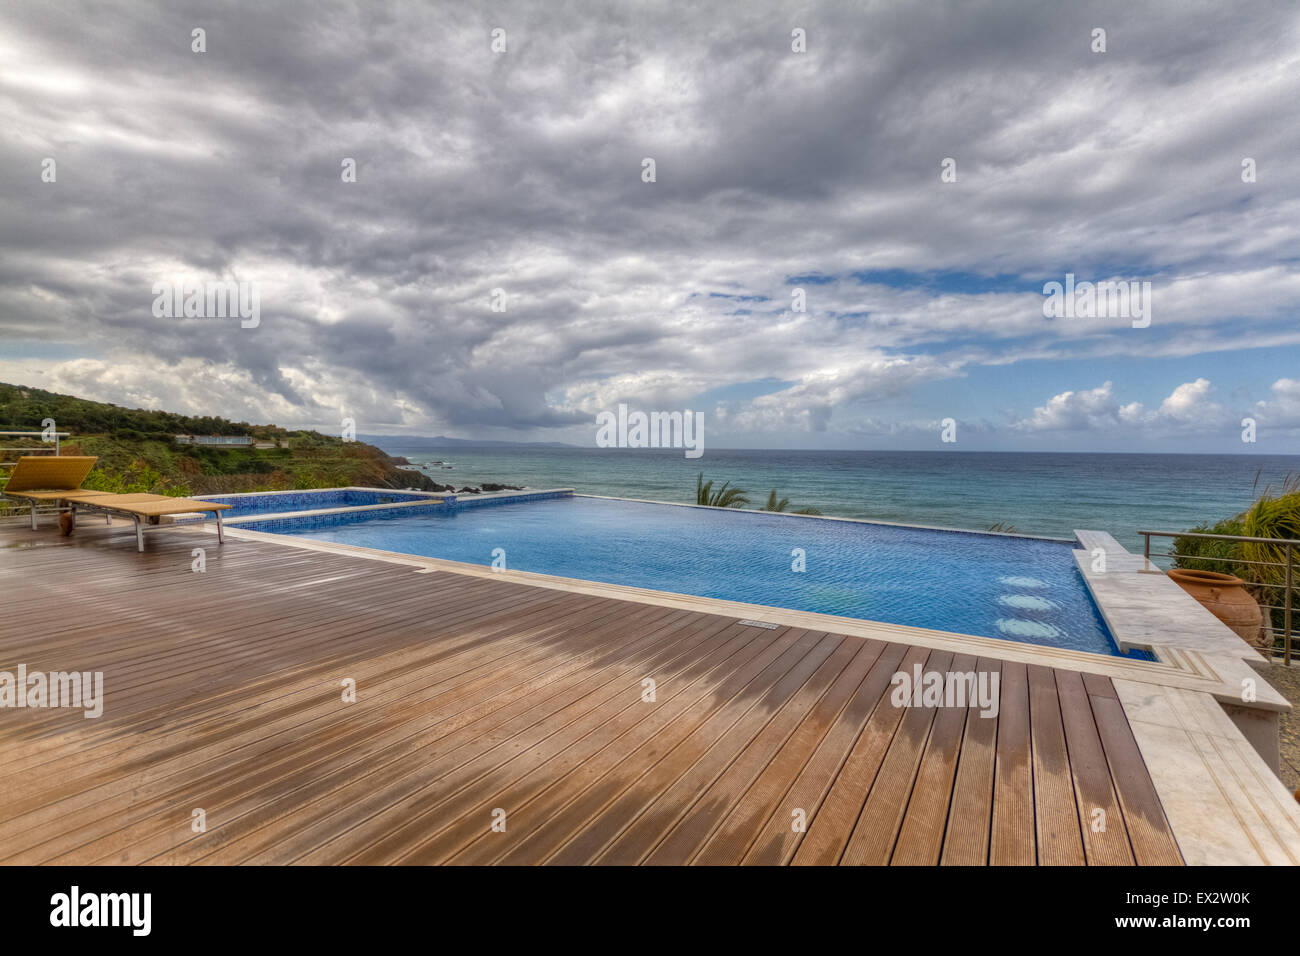 Dramatic View Of Swimming Pool And Deck Overlooking Sea On A Cloudy Stock Photo Royalty Free